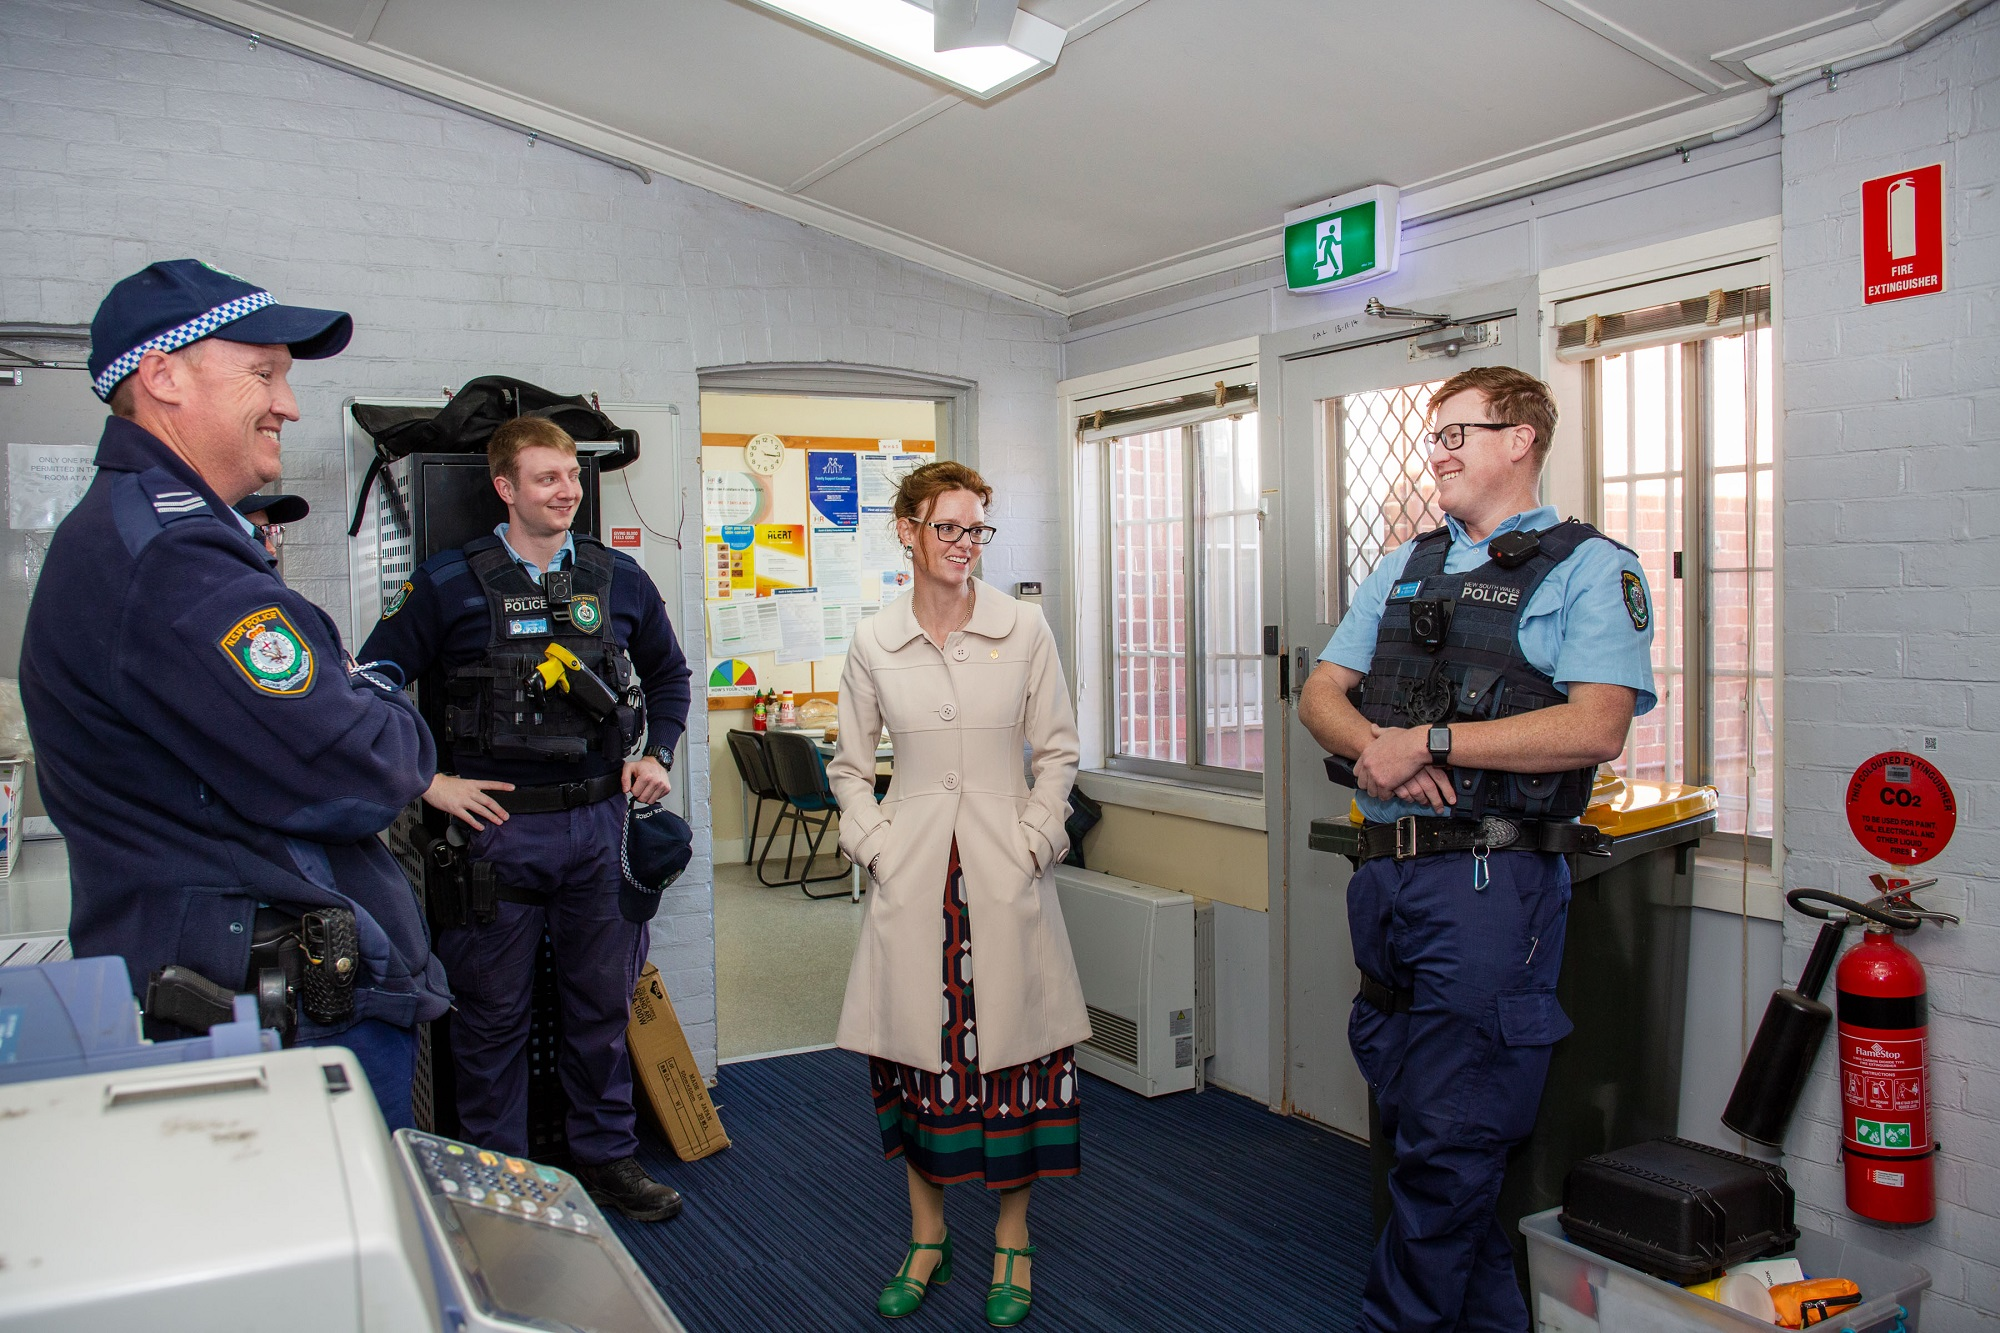 Steph Cooke speaks with police officers. They lean against walls and smile.